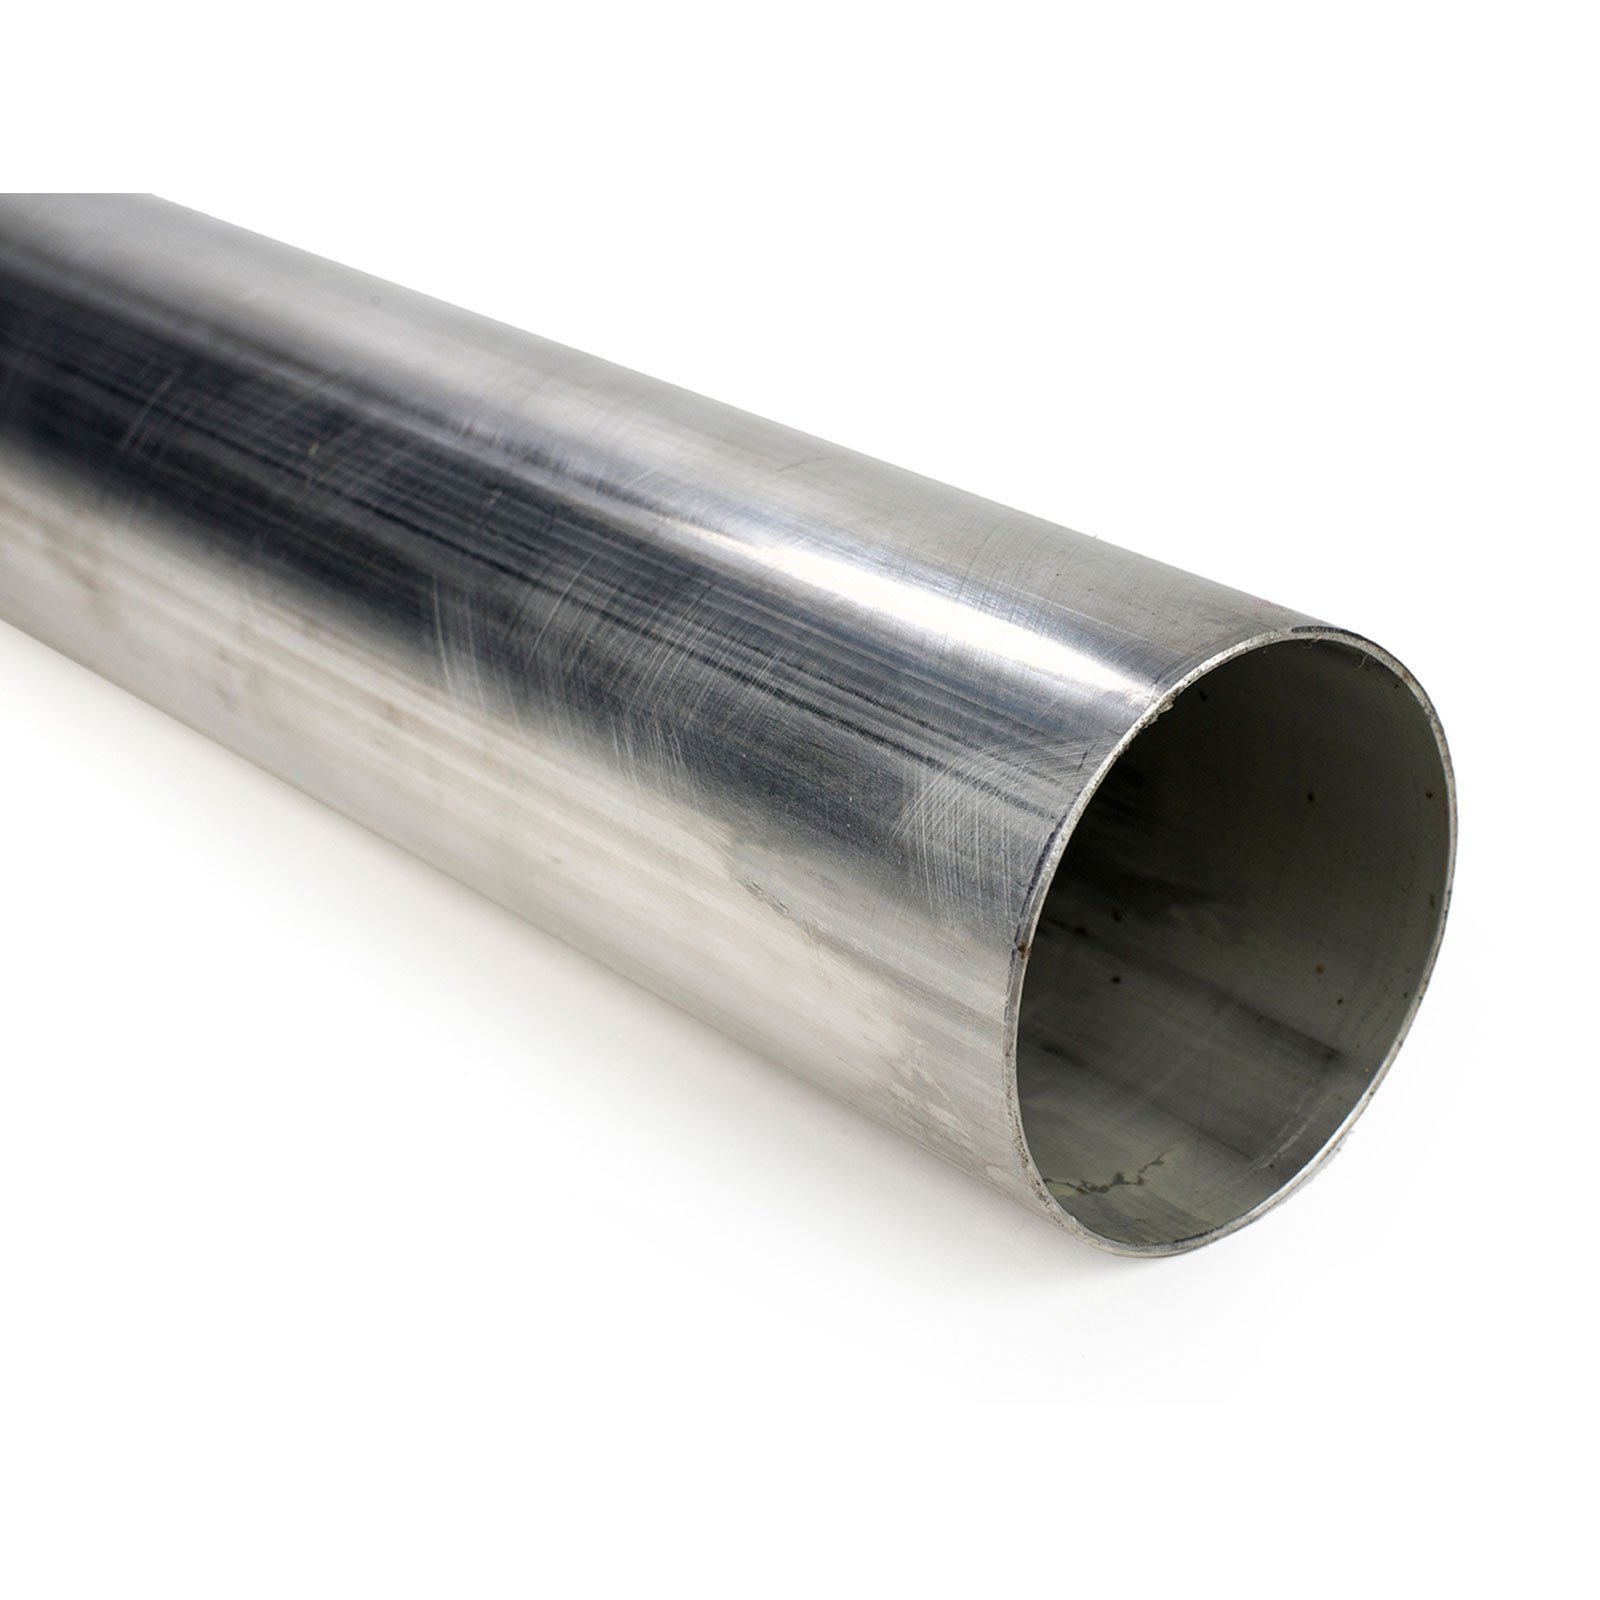 Squirrelly 2'' 304 Stainless Steel Straight Pipe Tubing 16 Gauge Exhaust 1 FOOT